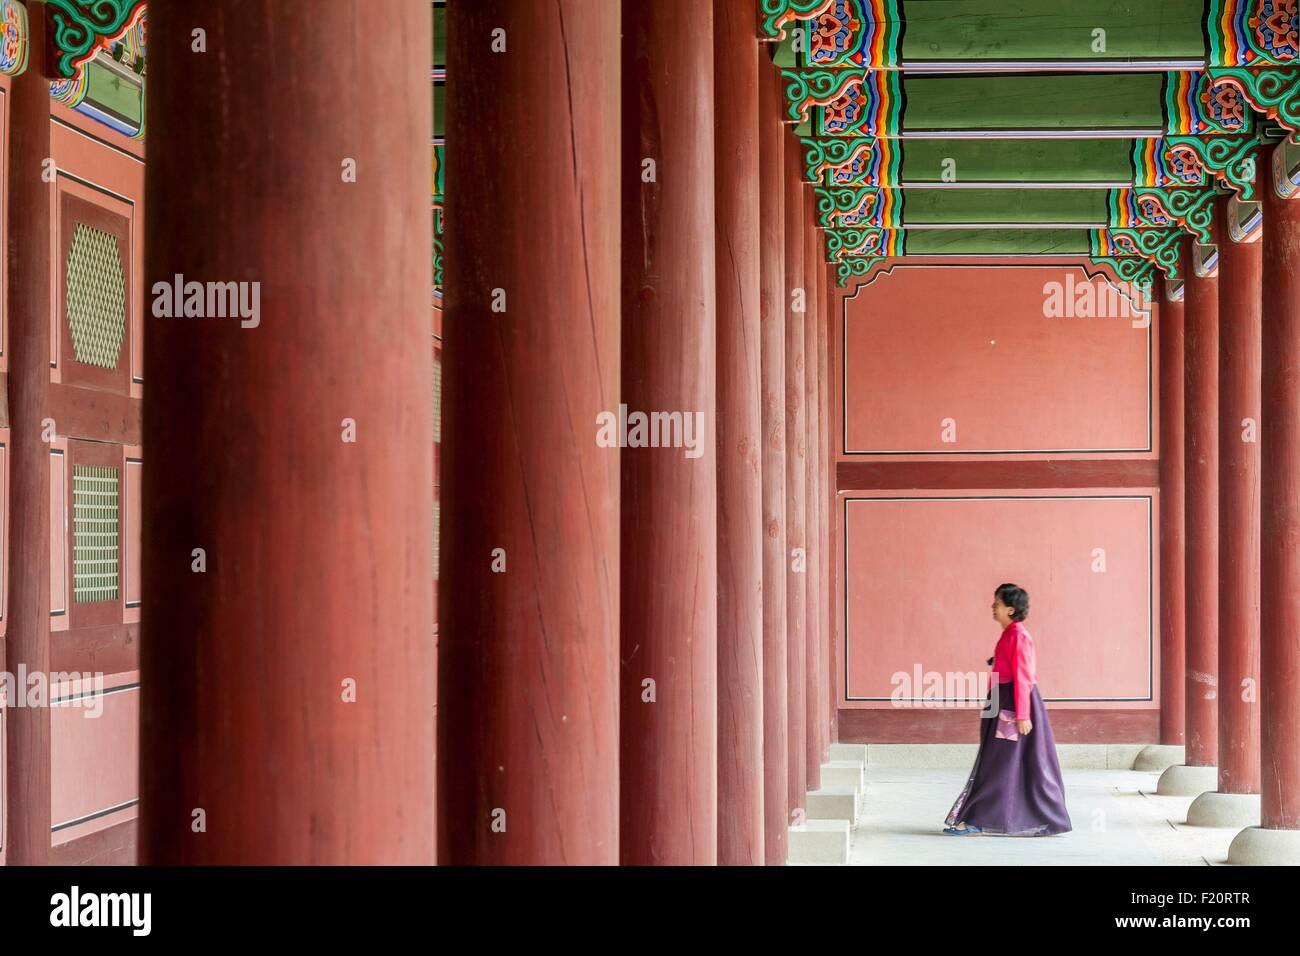 South Korea, Seoul, Jongno-gu, Gyeongbokgung Palace, royal palaces built during the Joseon Dynasty, Korean traditional - Stock Image